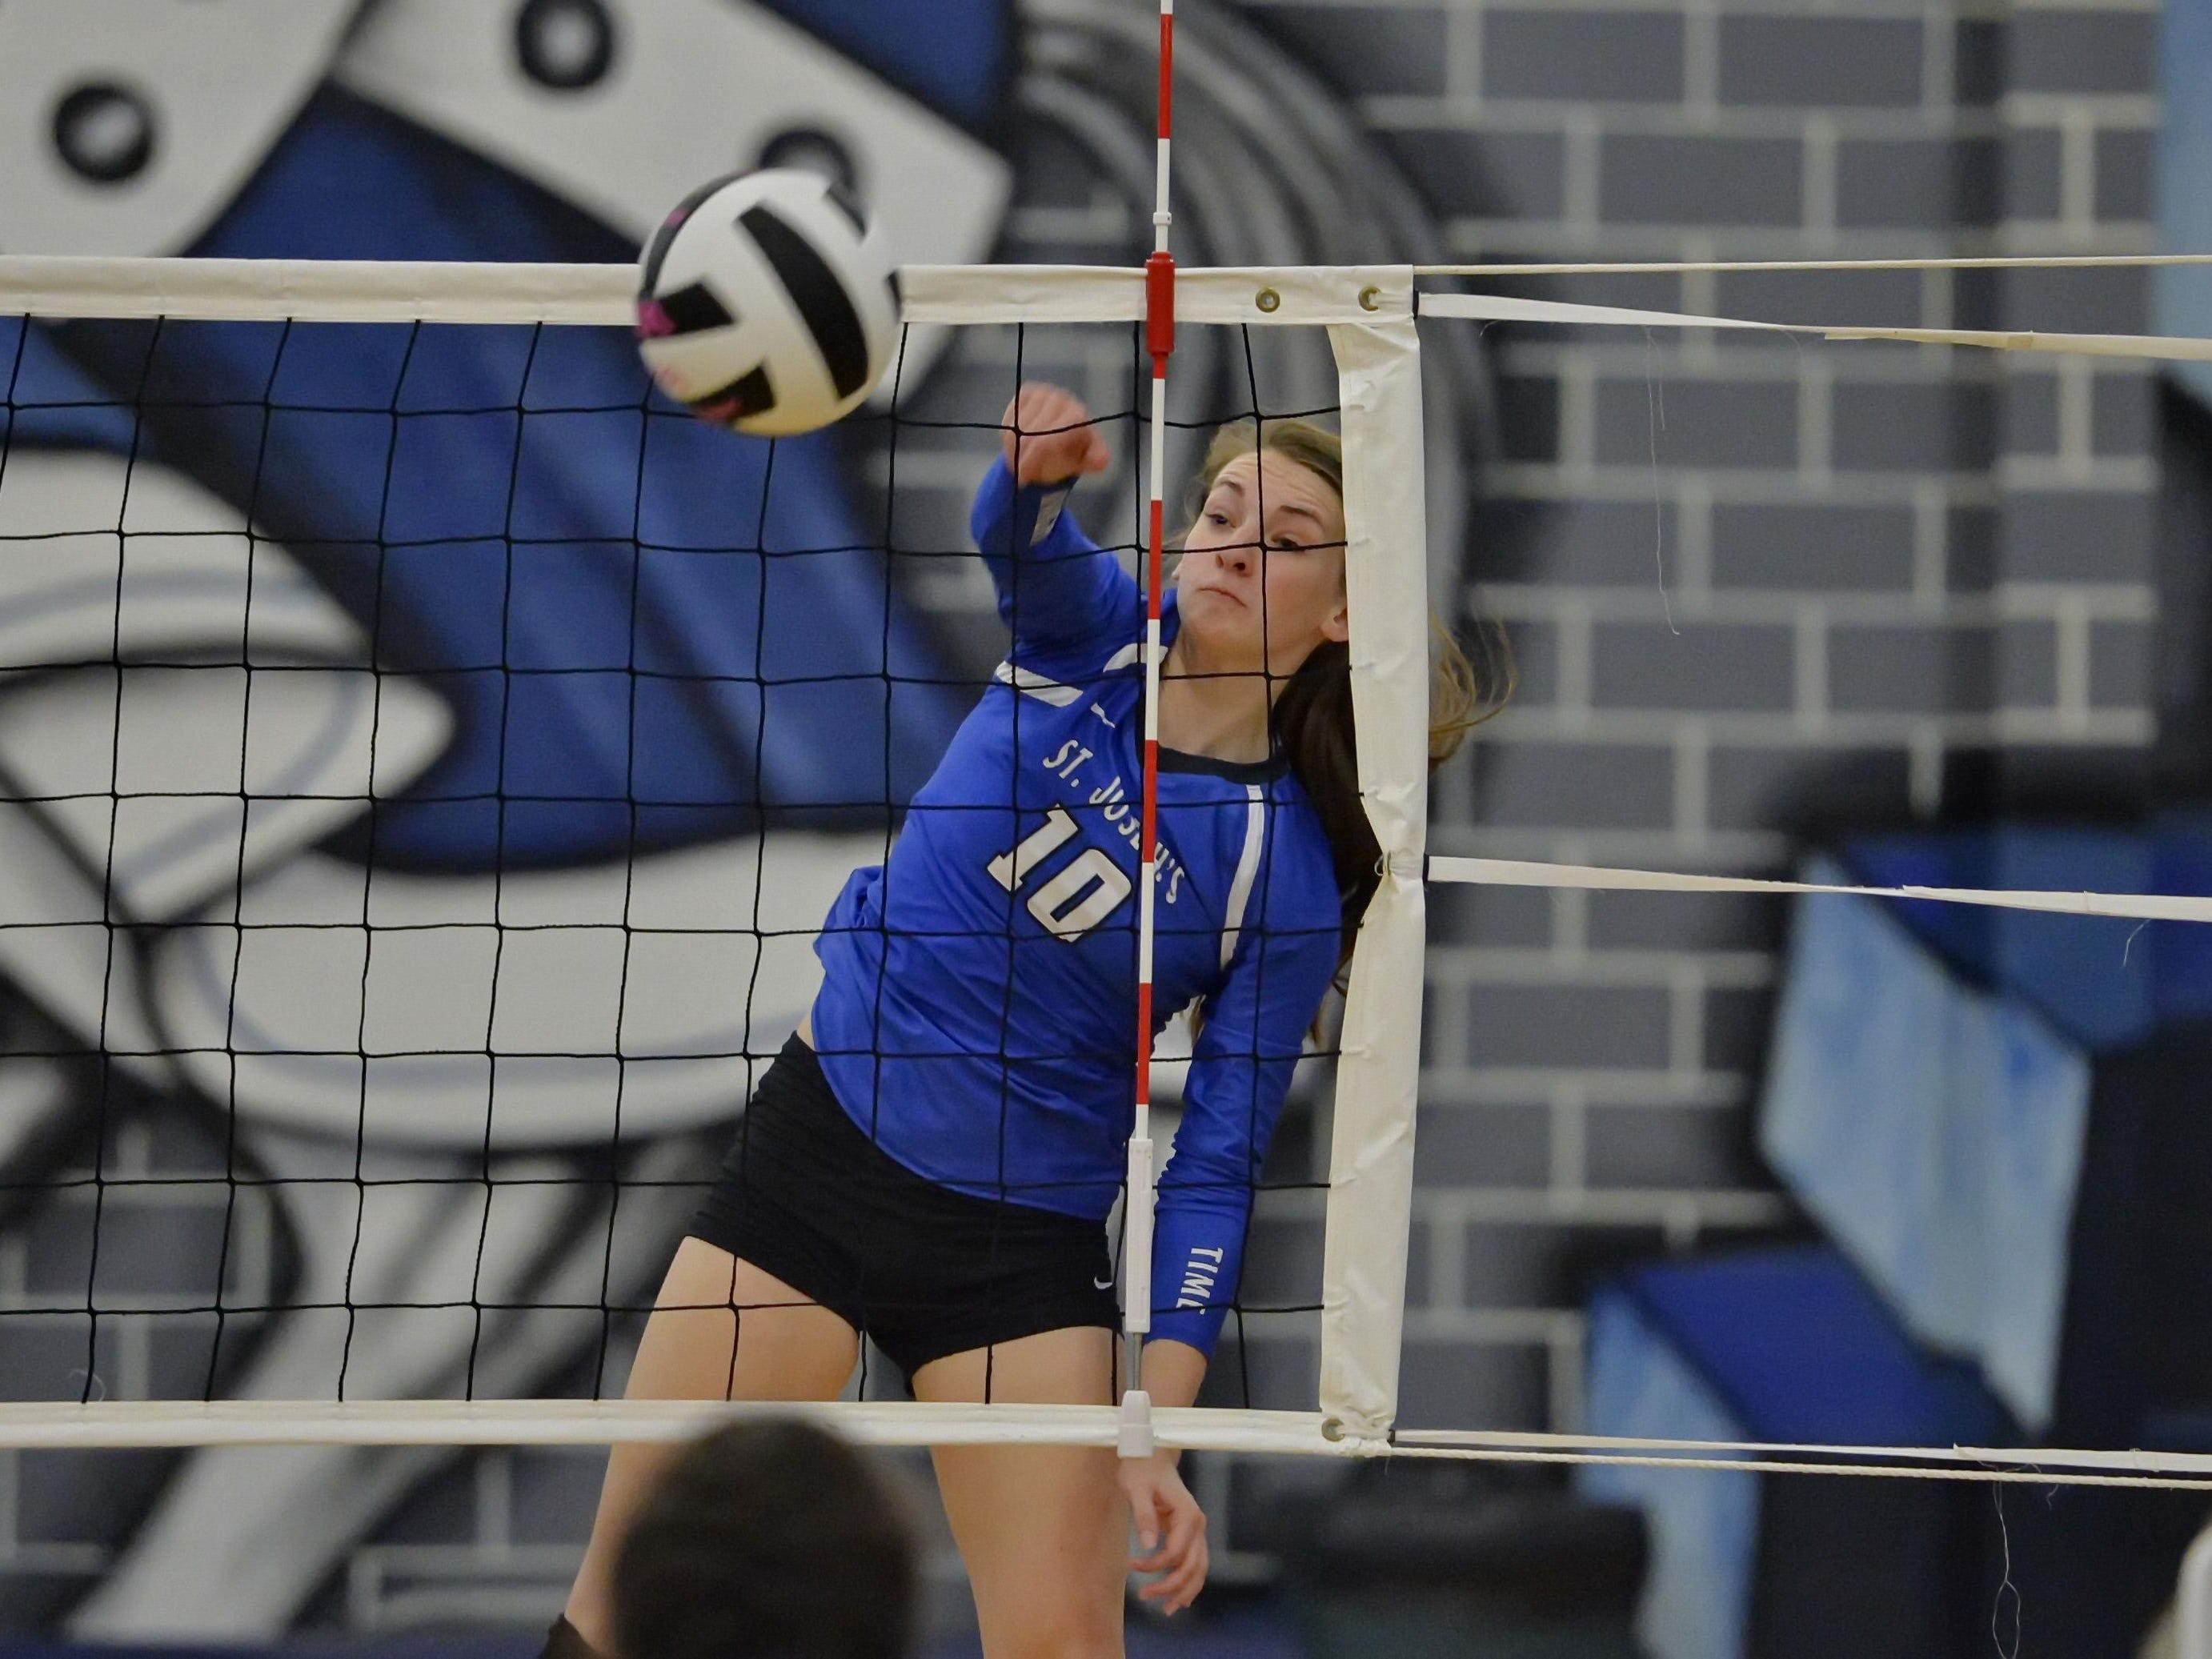 St. Joe's Allison Whitten smashes a ball for a point. St. Joe's hosted Ware Shoals in 1rst round volleyball playoffs Wednesday, Oct. 28, 2015.